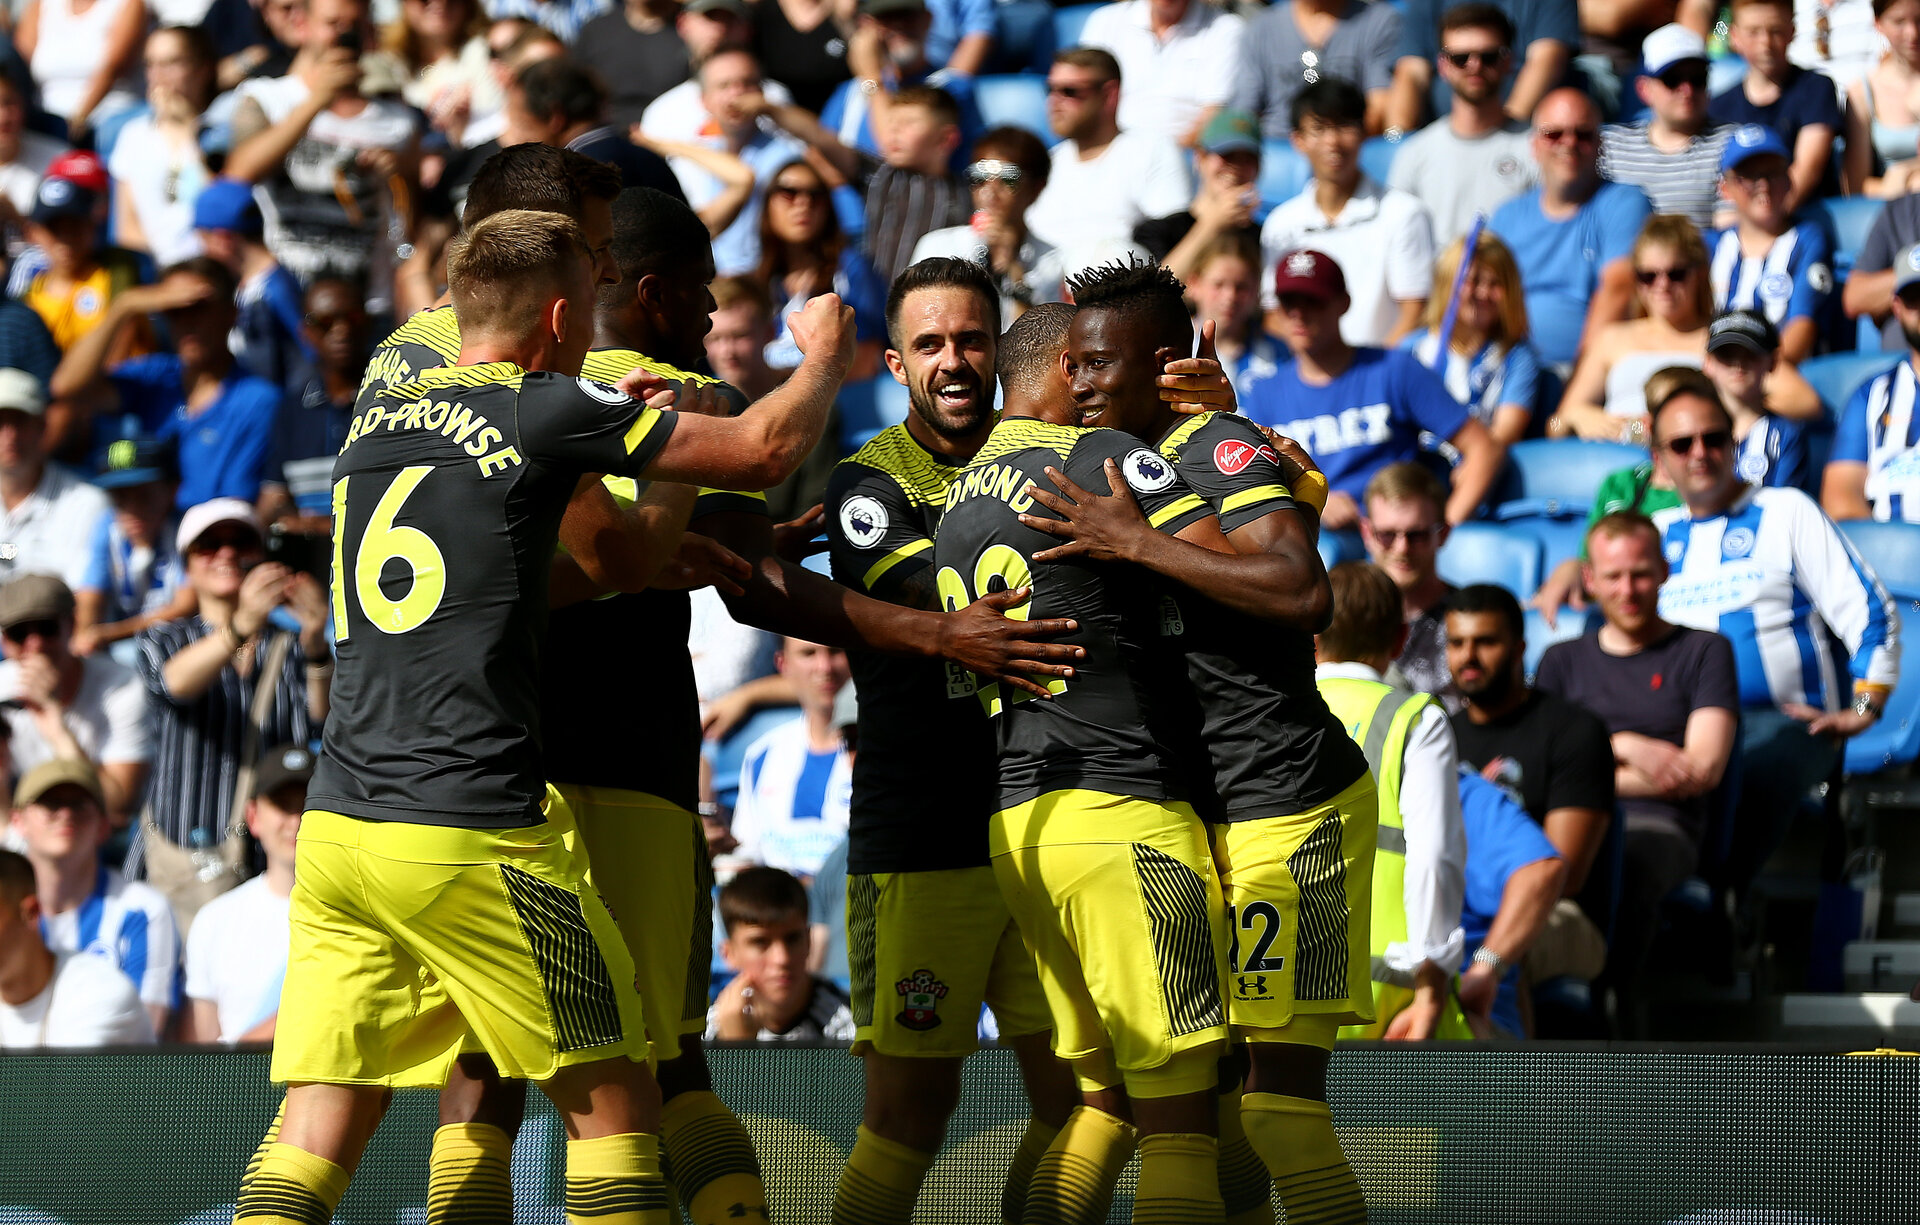 BRIGHTON, ENGLAND - AUGUST 24: Moussa Djenepo(12) of Southampton celebrates with his team mates after opening the scoring during the Premier League match between Brighton & Hove Albion and Southampton FC at American Express Community Stadium on August 24, 2019 in Brighton, United Kingdom. (Photo by Matt Watson/Southampton FC via Getty Images)